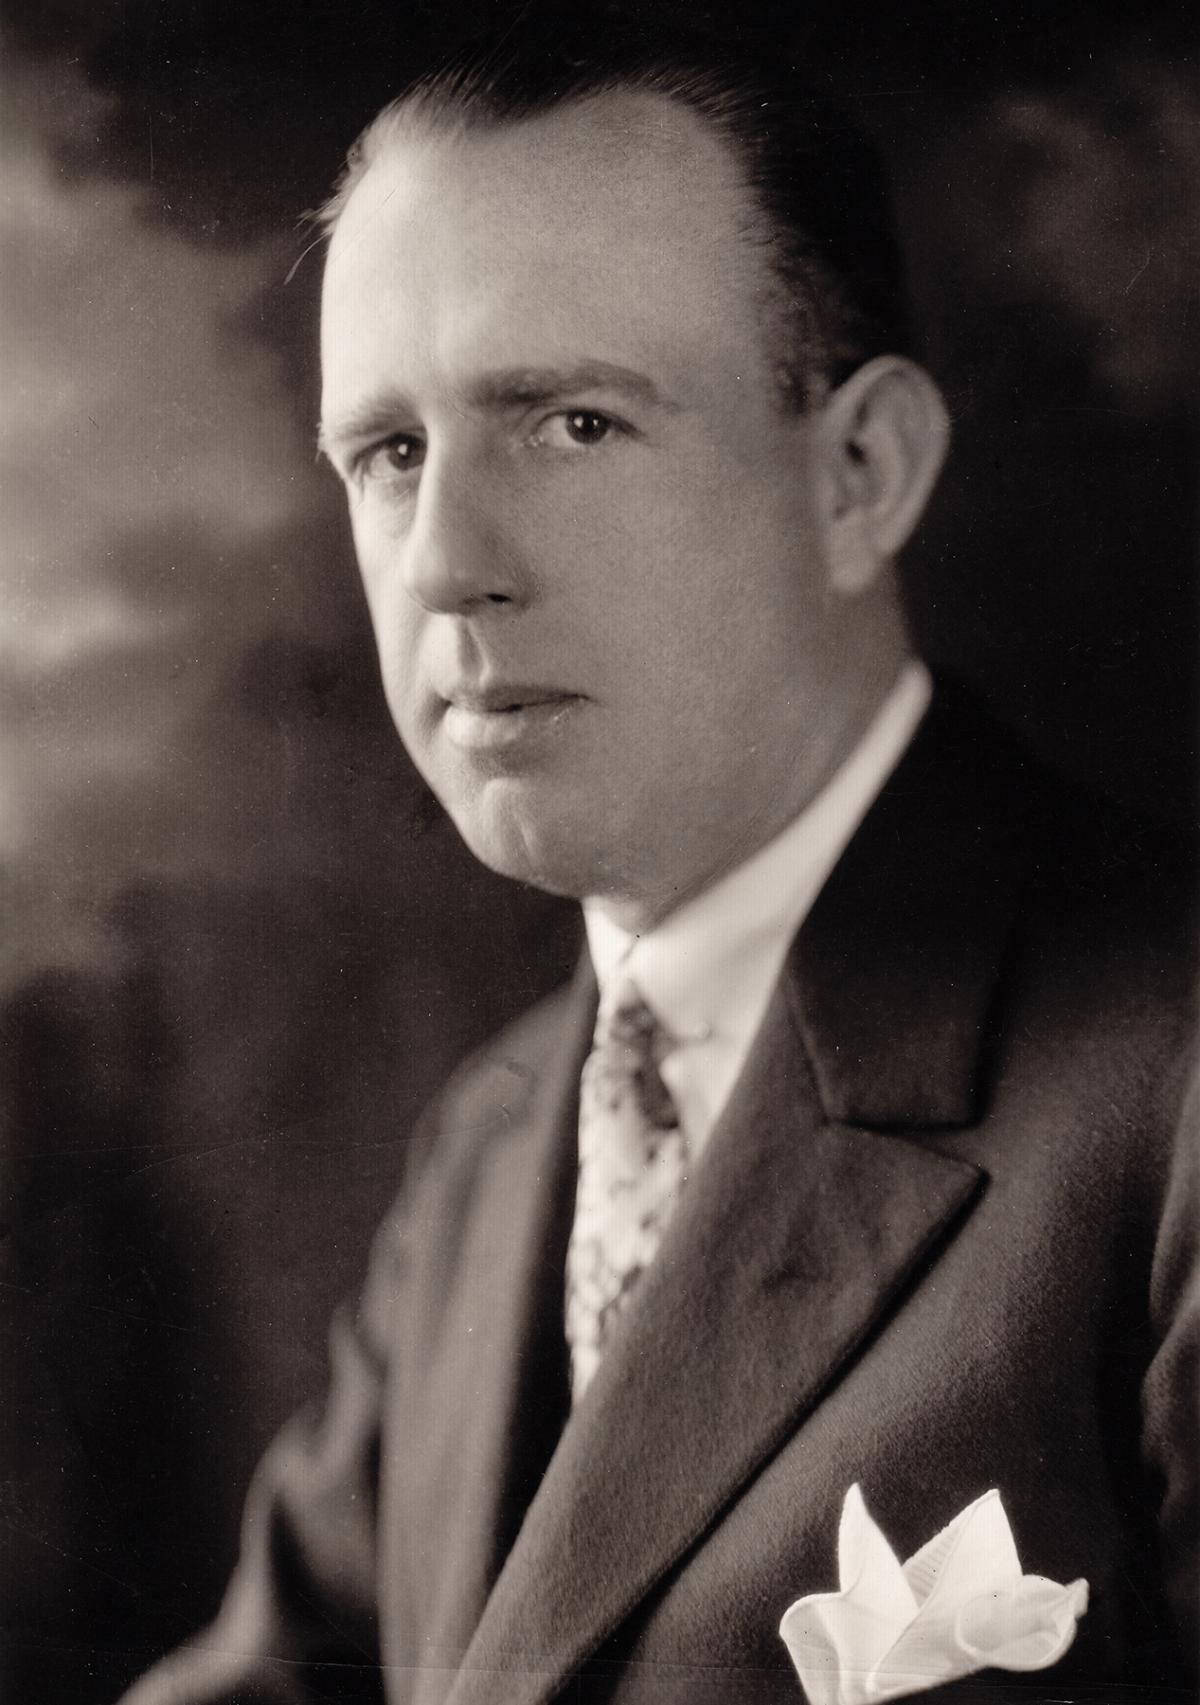 Shoulders-up photo of Powel Crosley, wearing a suit and pocket square